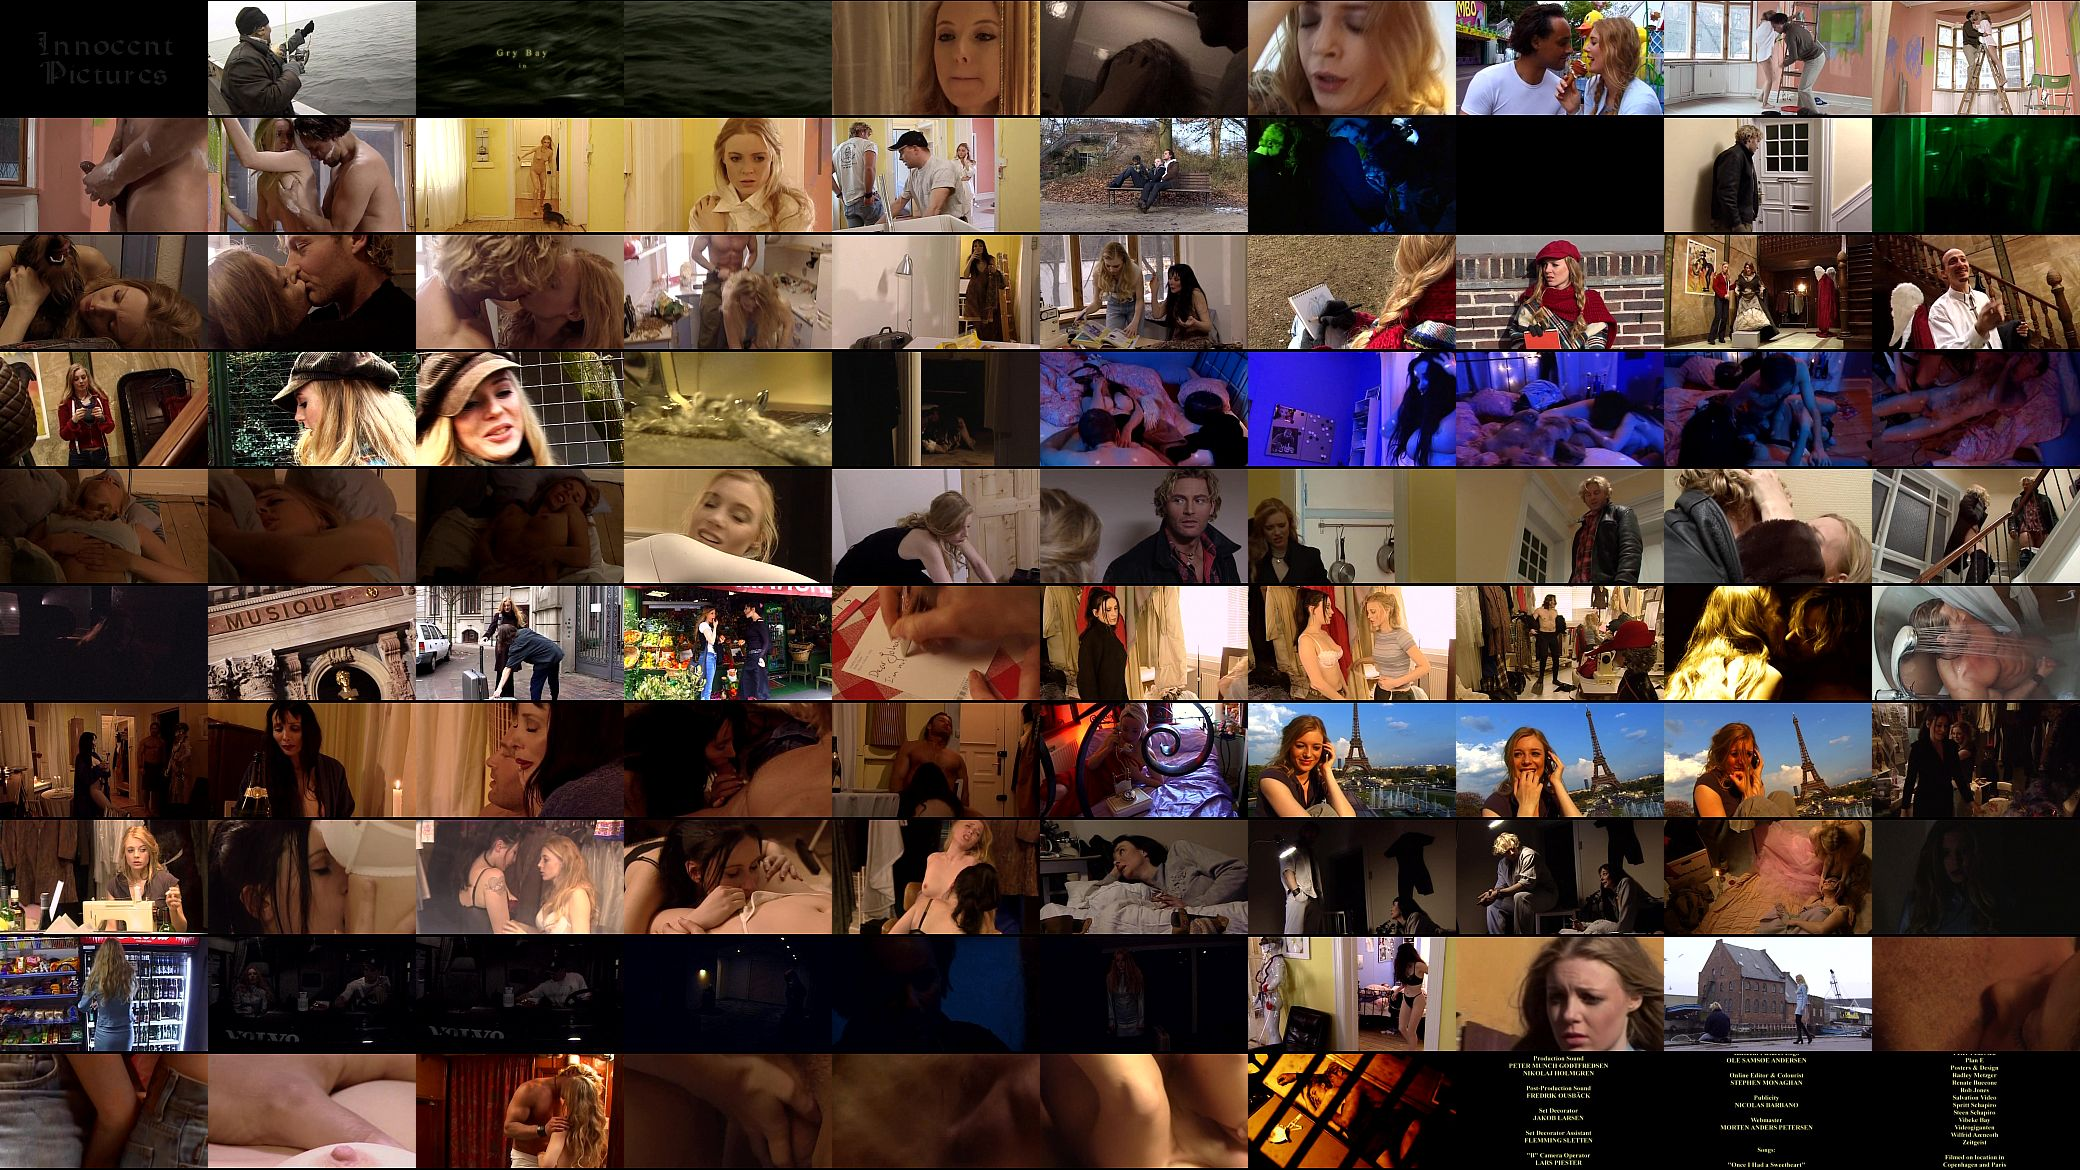 All About Anna Uncensored all.about.anna.2005.dvdrip.xvid - xvideos